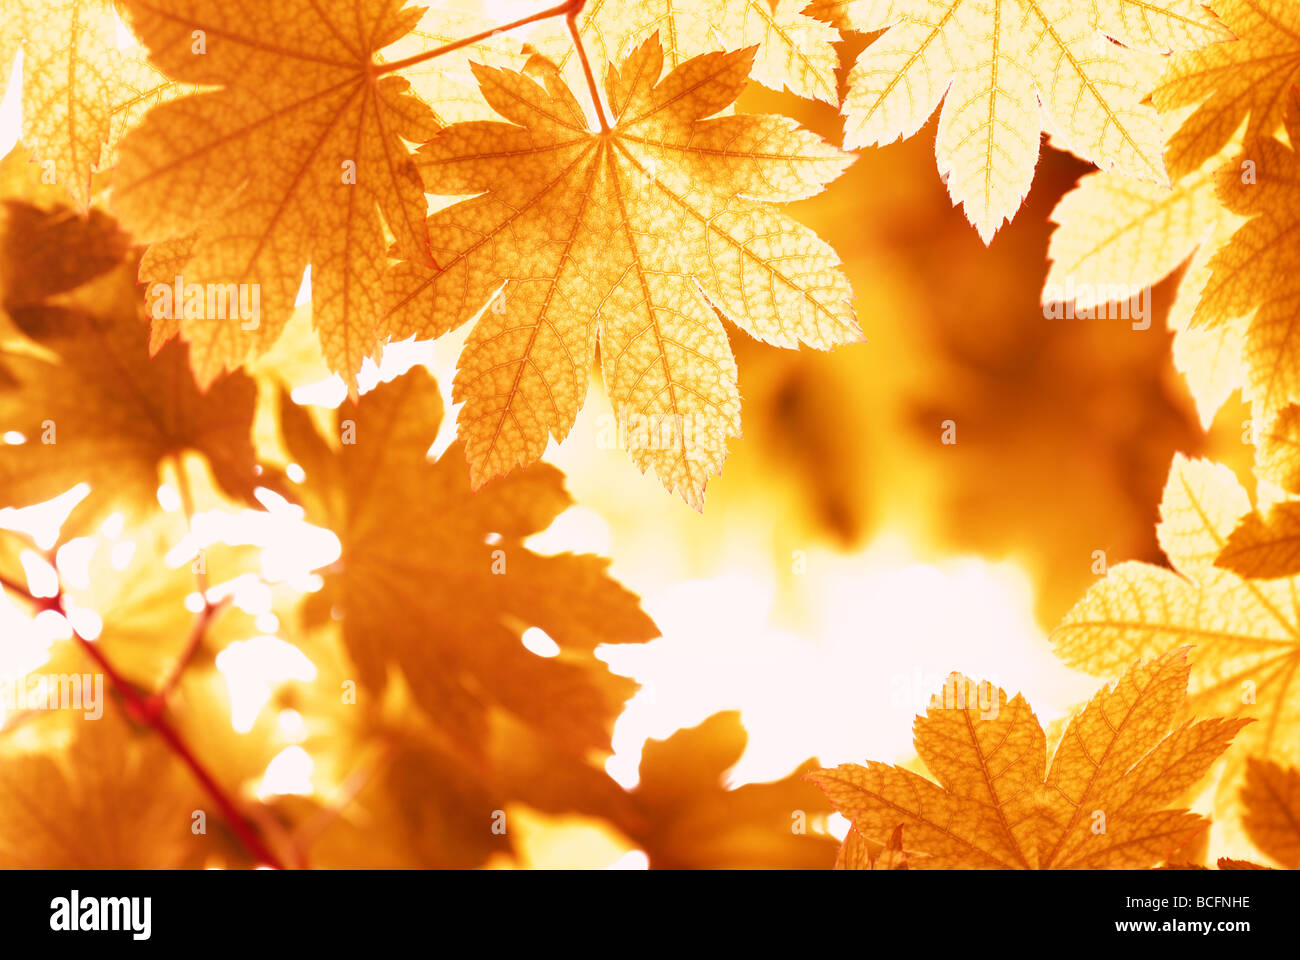 maple leaves in autumn - Stock Image